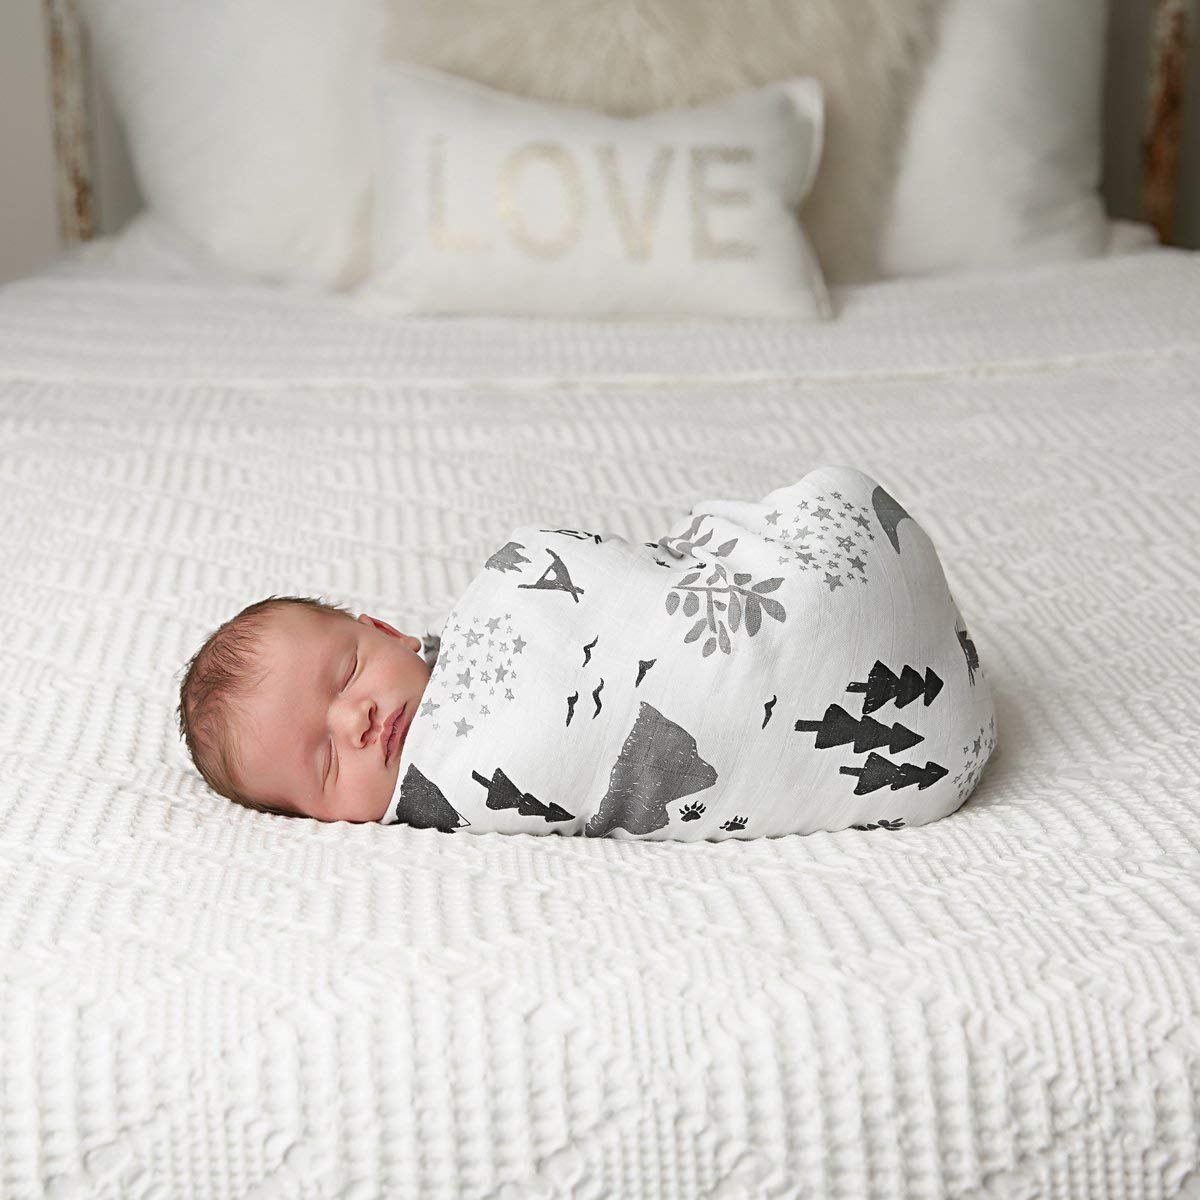 Muslin Swaddle Blanket Set 'Adventurer' Large 47x47 inch | Super Soft Bamboo Blankets | Arrow, Feather and Stars | 3 Pack Baby Shower Gift Bundle of Swaddles for Boys and Girls | 10,000 Wash Warranty by Kids N' Such (Image #2)